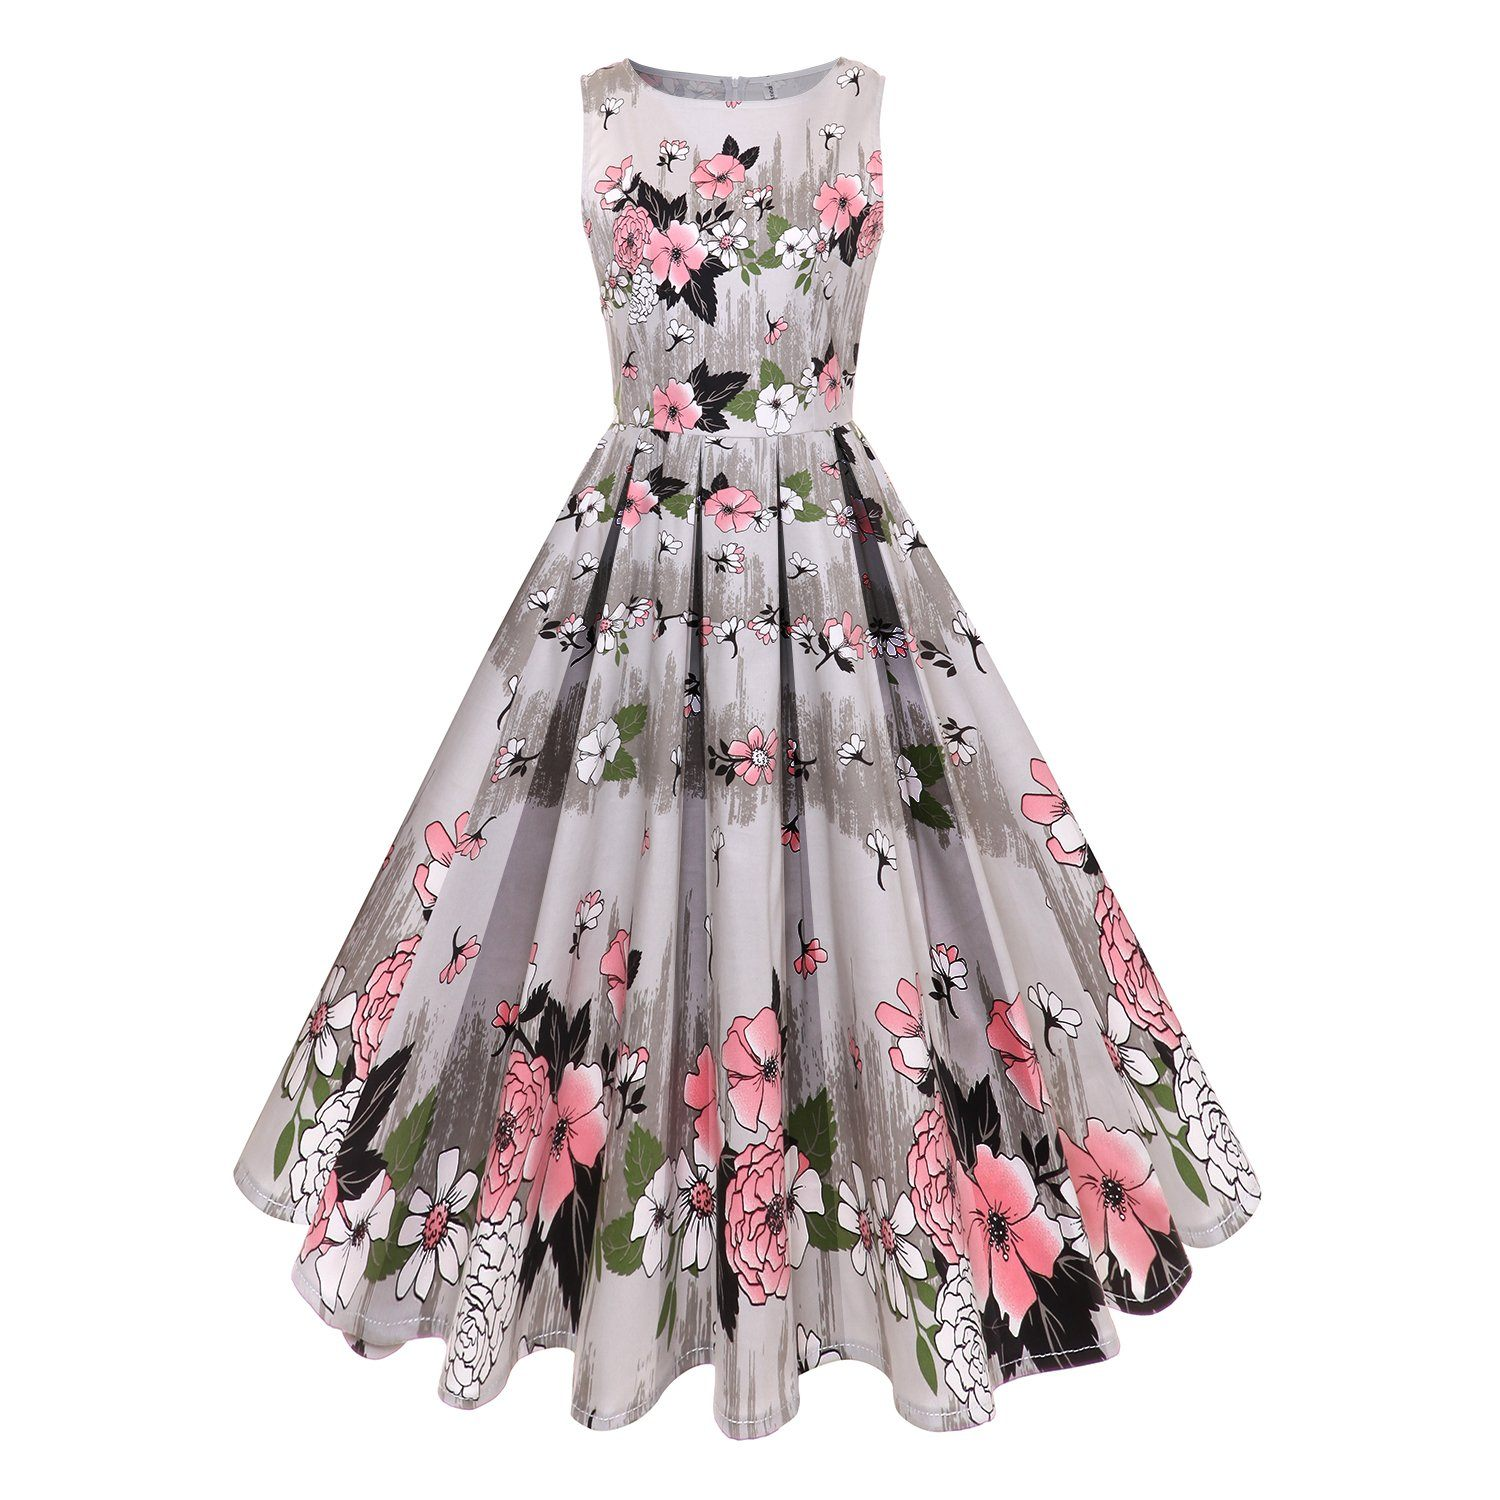 1950s Vintage Retro Floral Printed Hepburn Dress Sleeveless